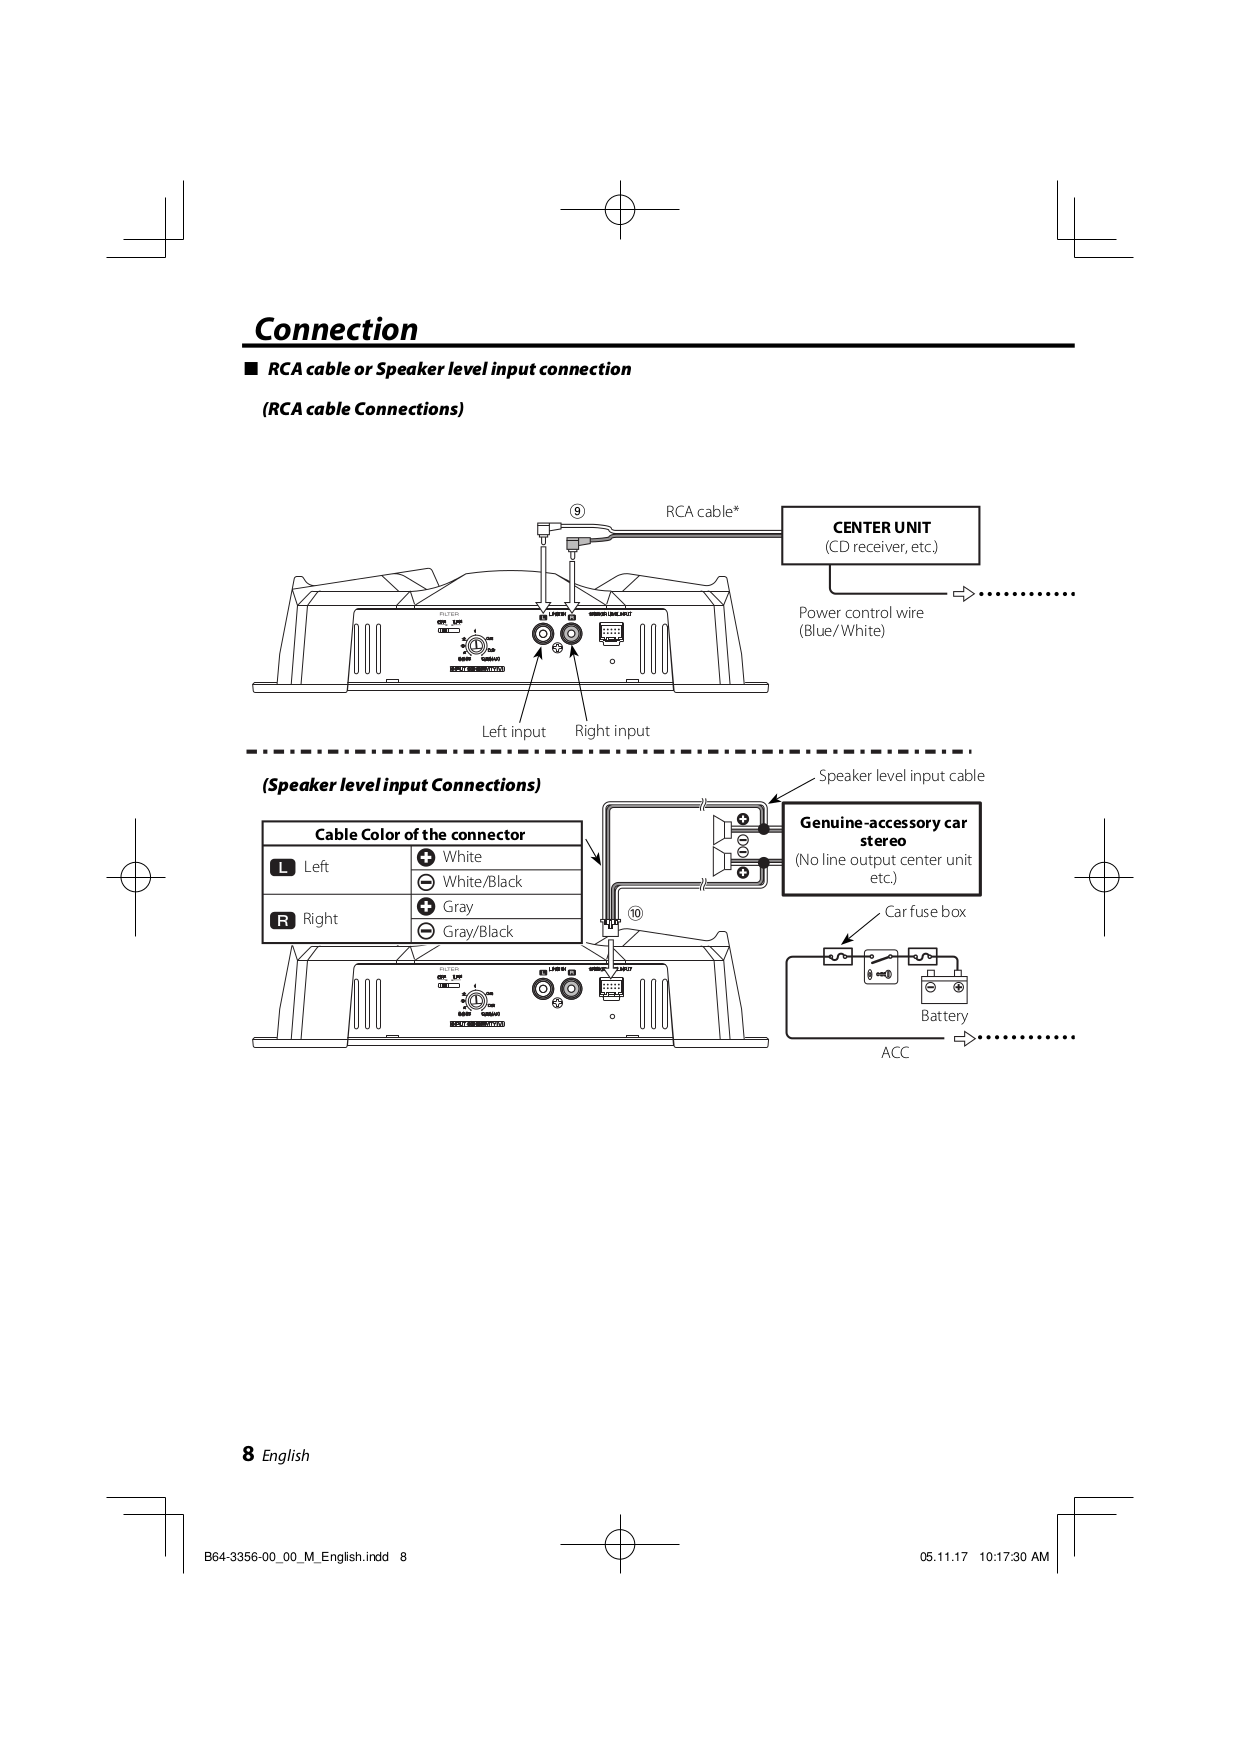 KAC 6203 ins manual.pdf 7 pdf manual for kenwood amp kac 622 kenwood kac 622 wiring diagram at reclaimingppi.co